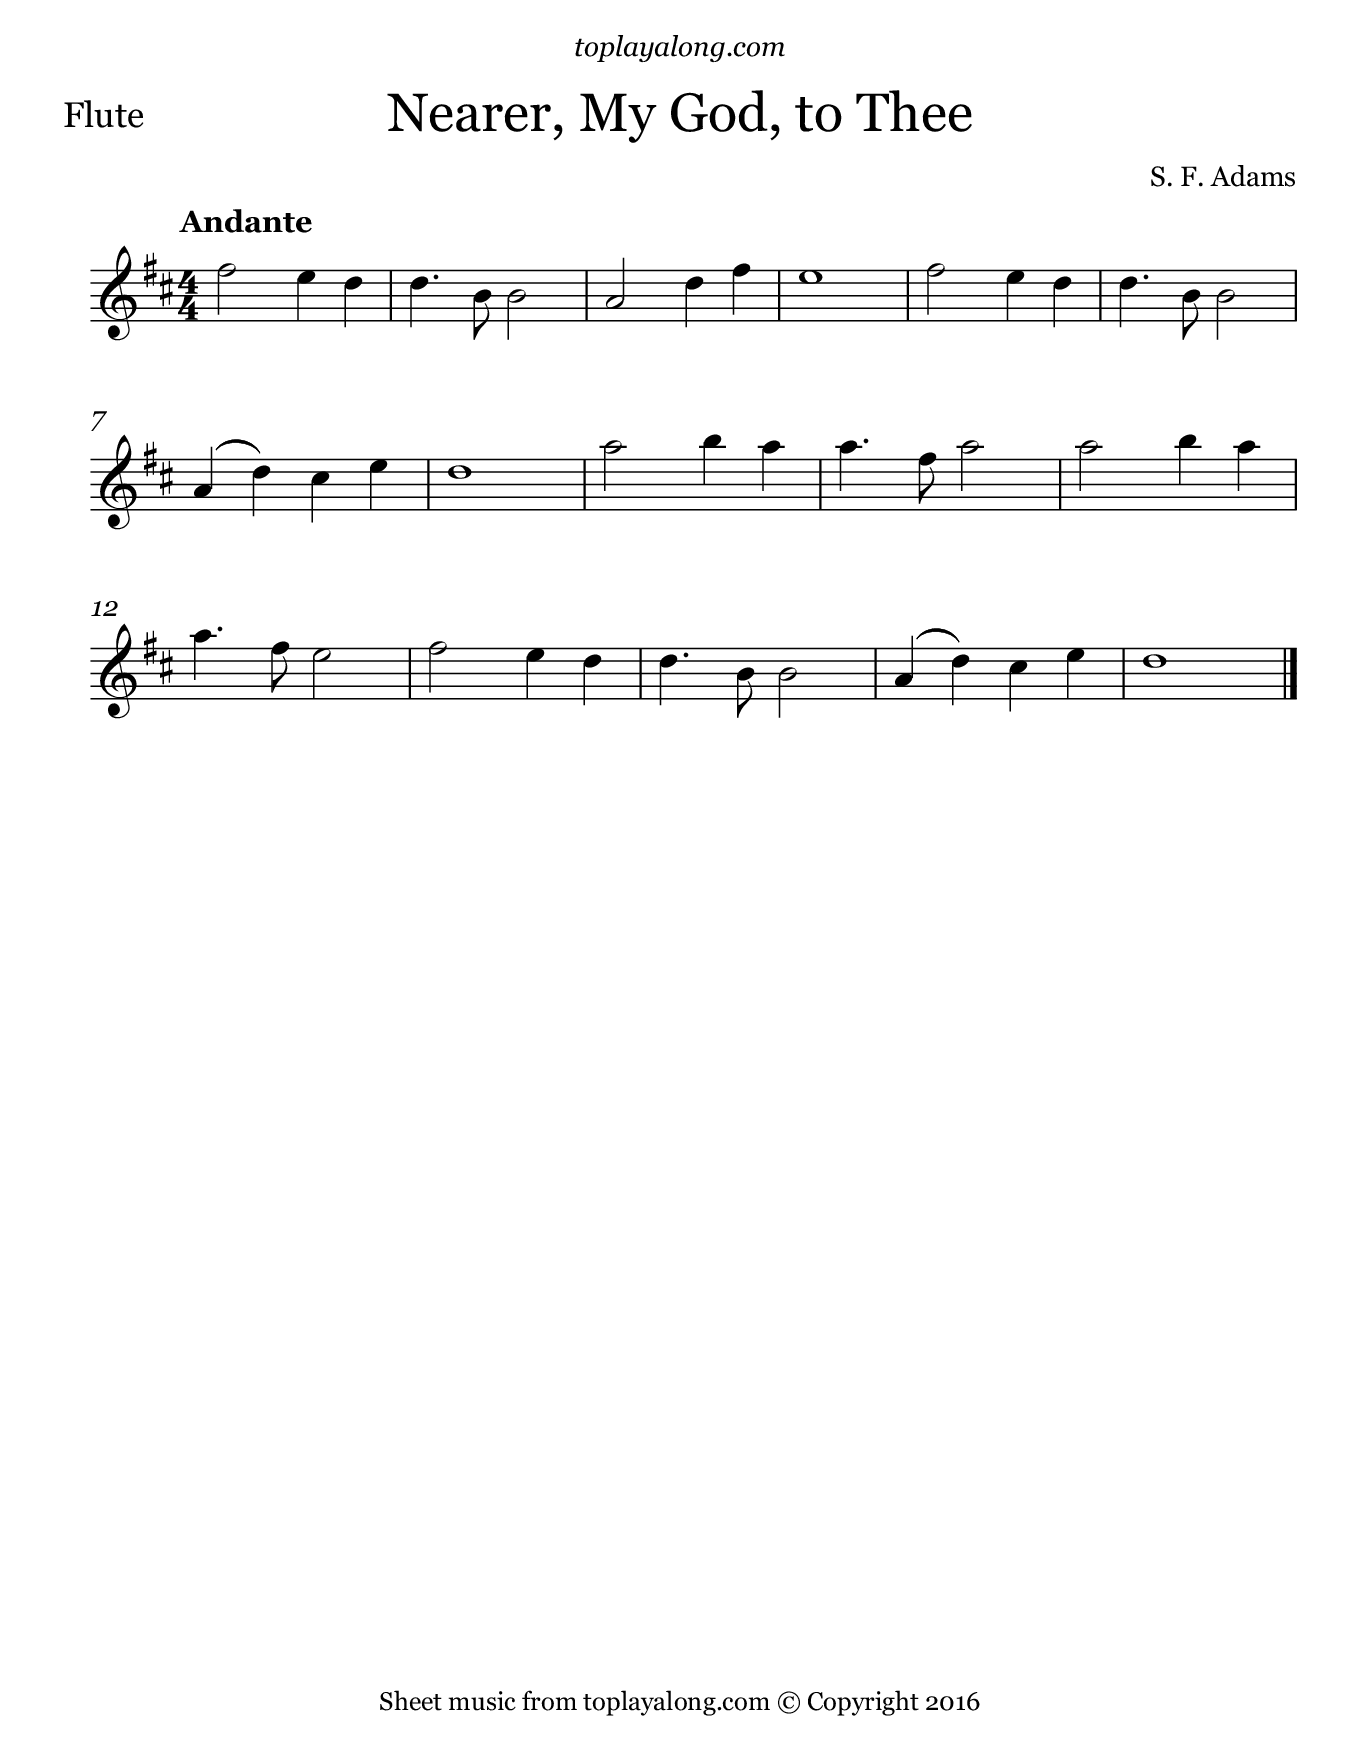 Nearer, My God, to Thee. Sheet music for Flute, page 1.